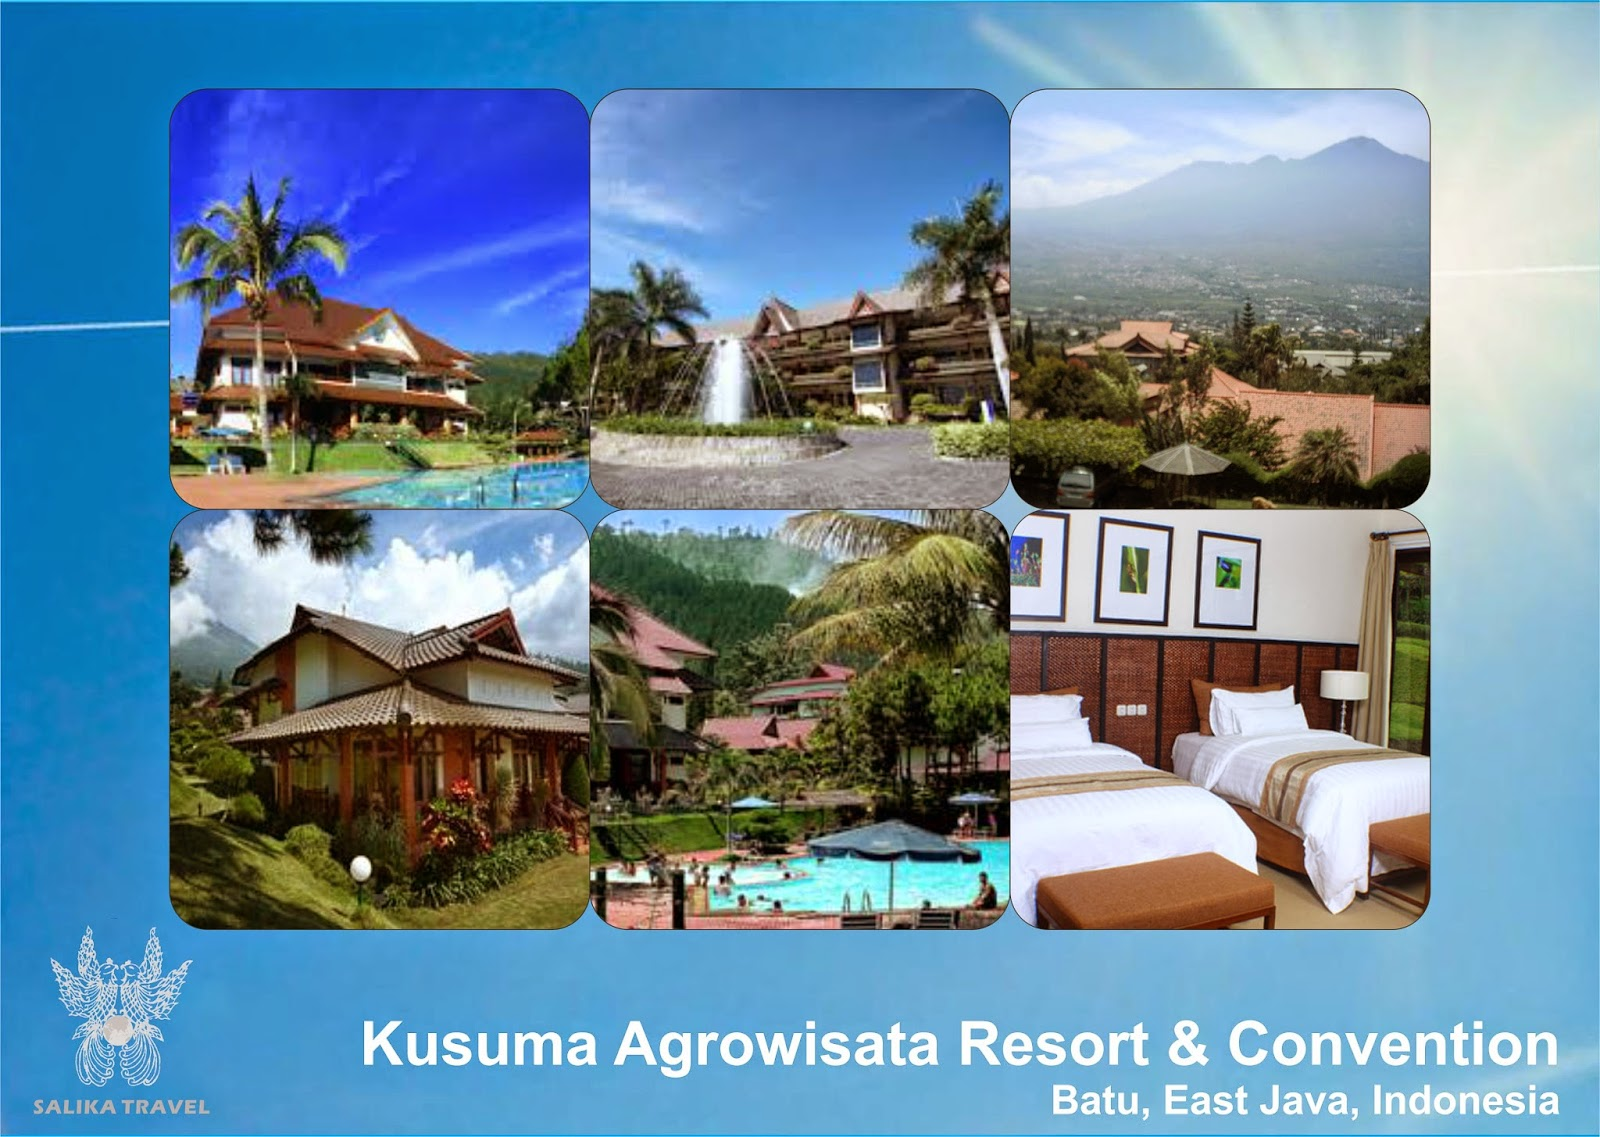 Kusuma Agrowisata Hotel Resort & Convention Batu - Salika Travel